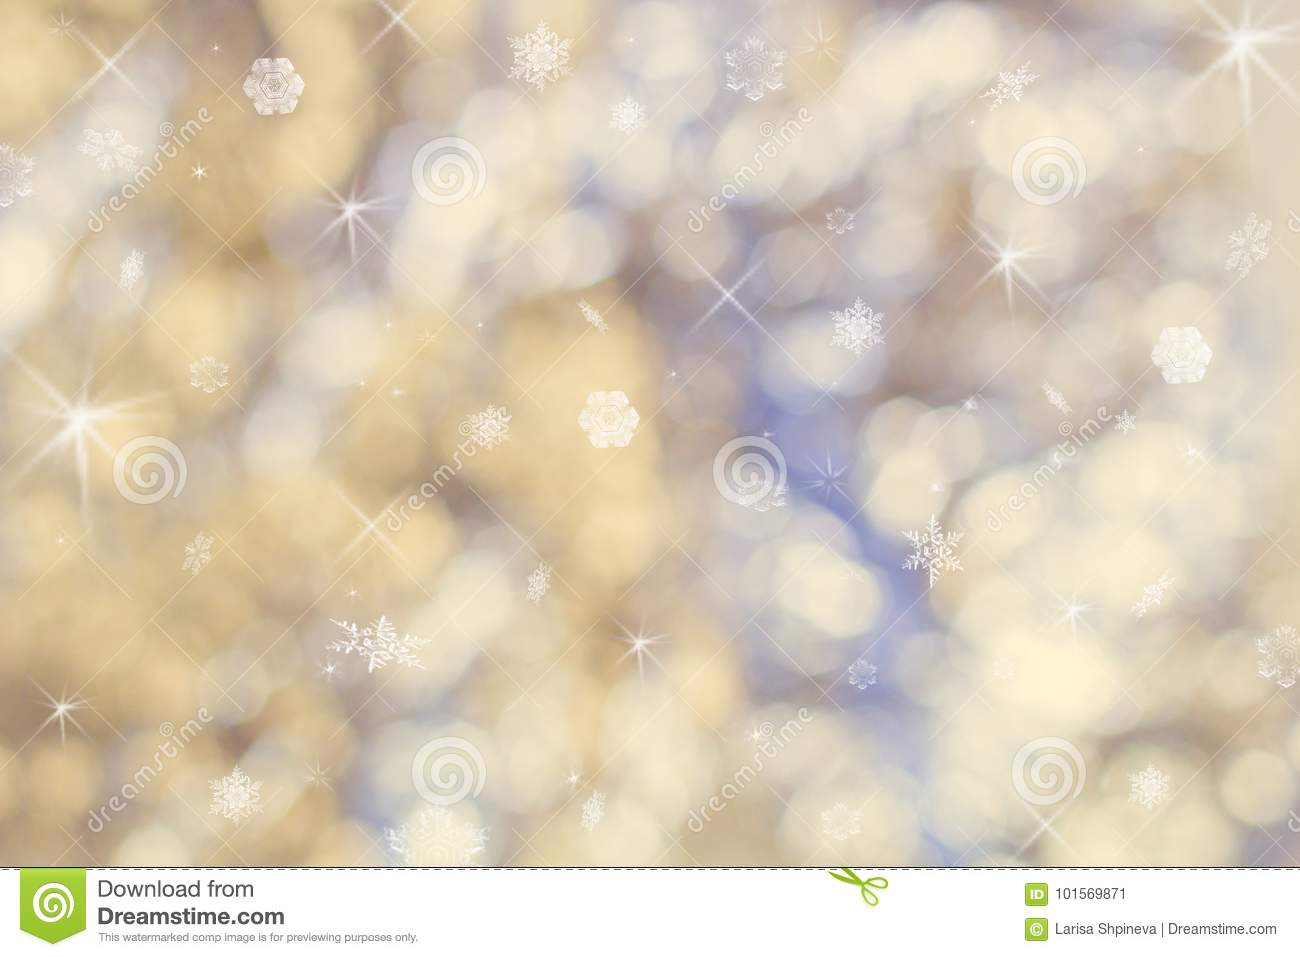 Beautiful abstract Christmas background of holiday lights